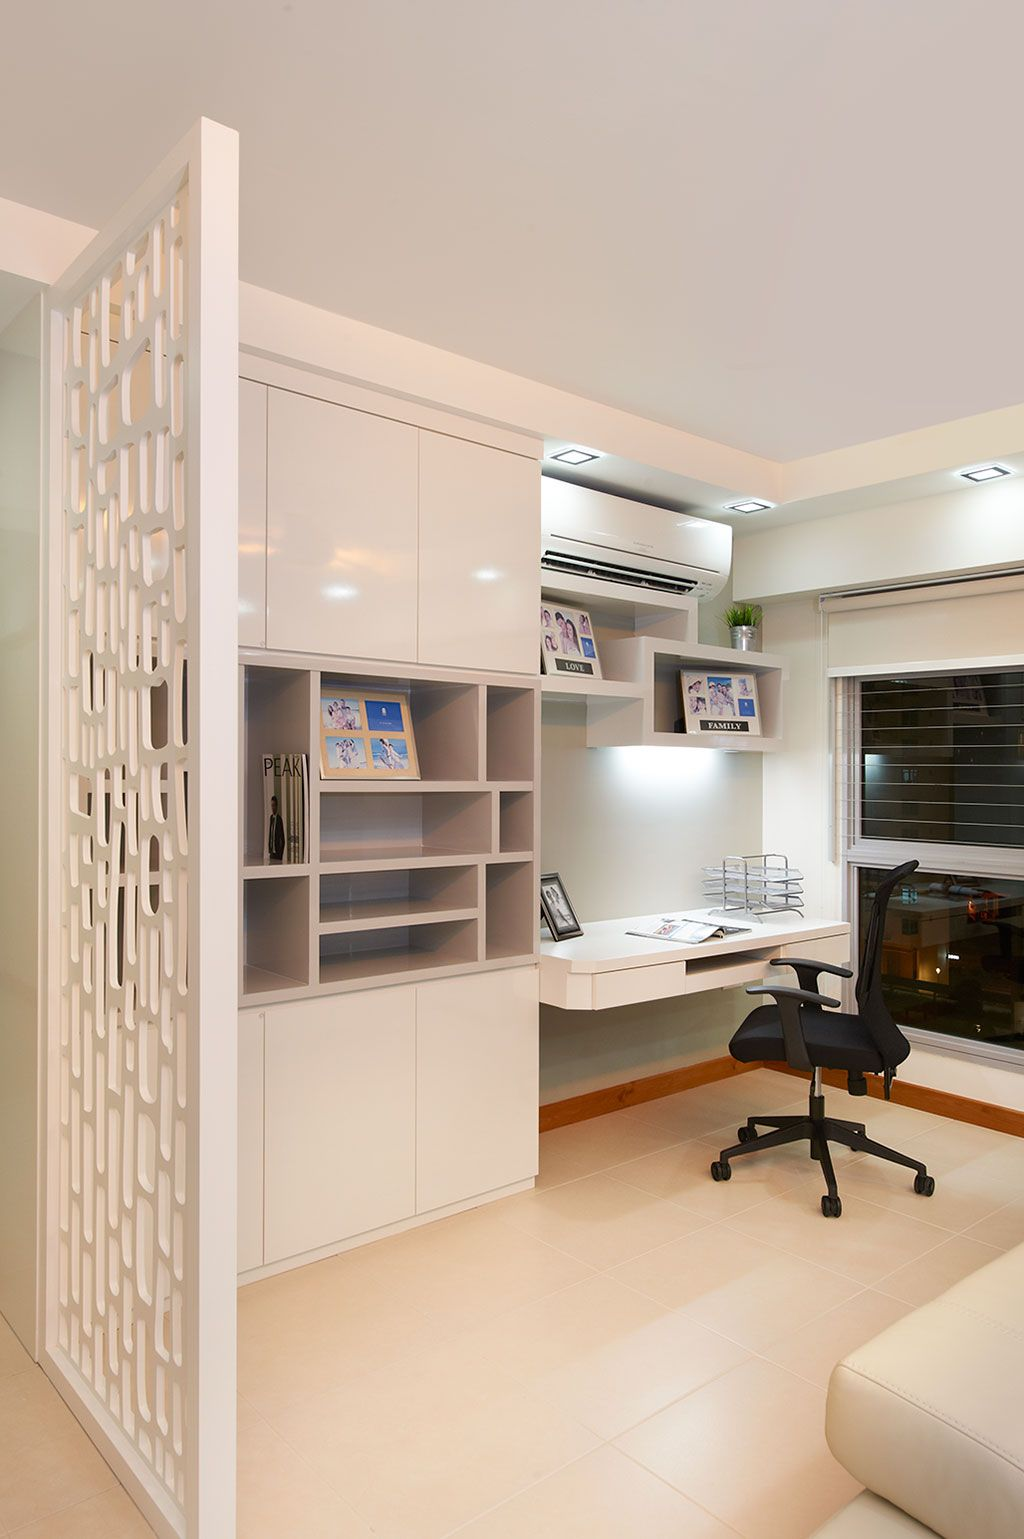 Study Room Interior Design Ideas Part - 21: Hdb Bedroom Renovation Ideas. Study Room DesignStudy ...